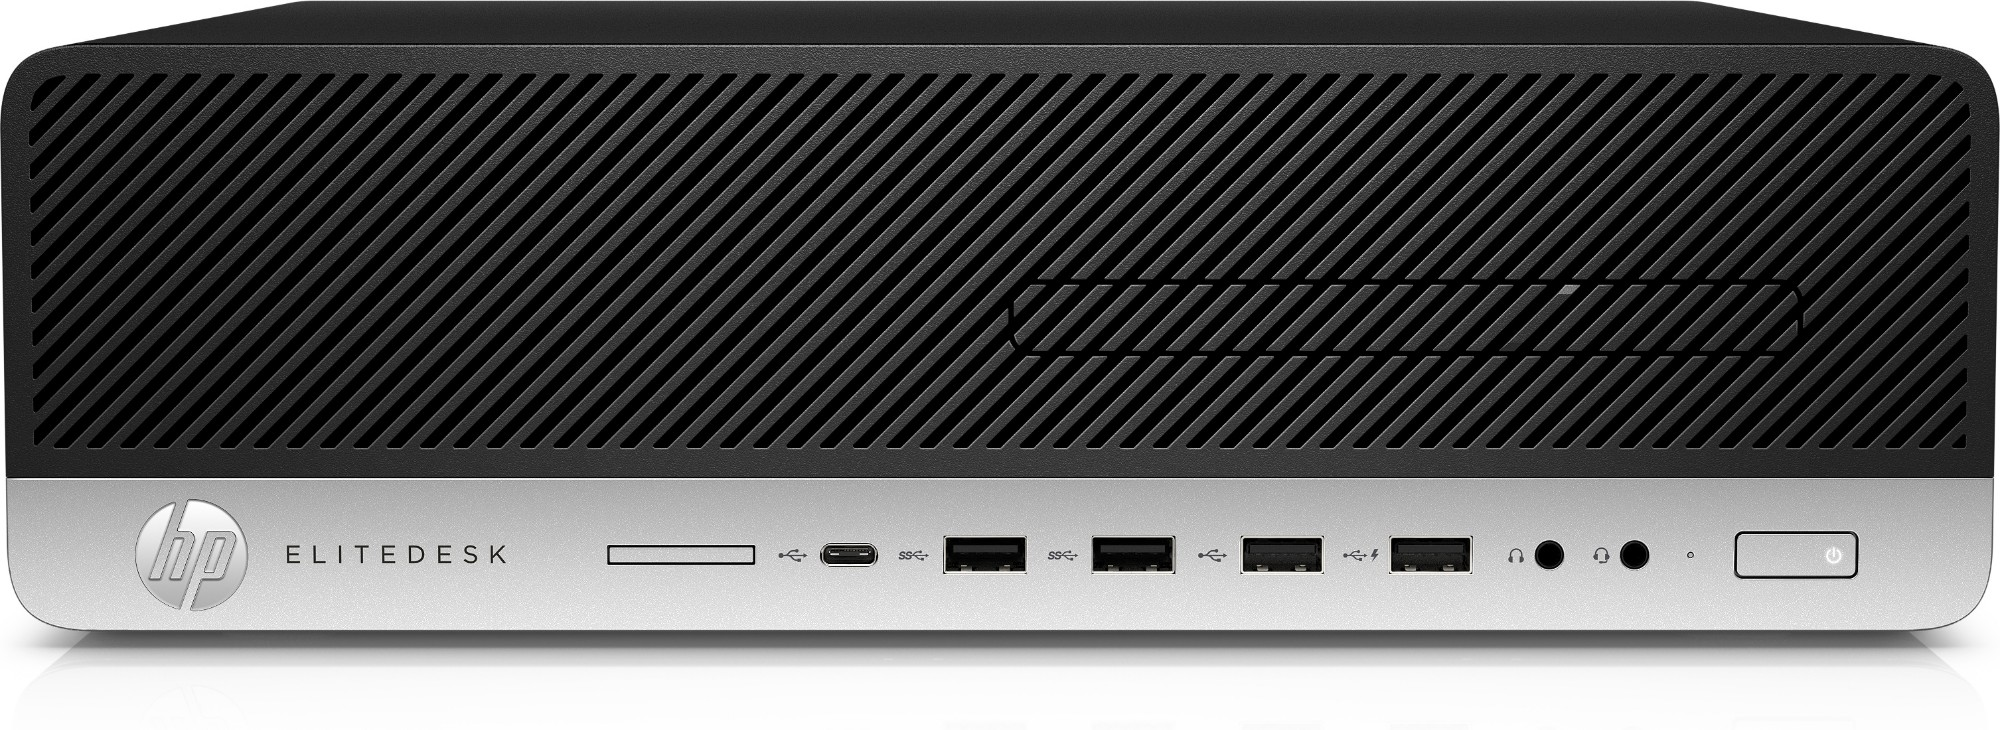 HP EliteDesk 800 G5 9th gen Intel® Core™ i7 i7-9700 16 GB DDR4-SDRAM 1000 GB SSD Black,Silver SFF PC